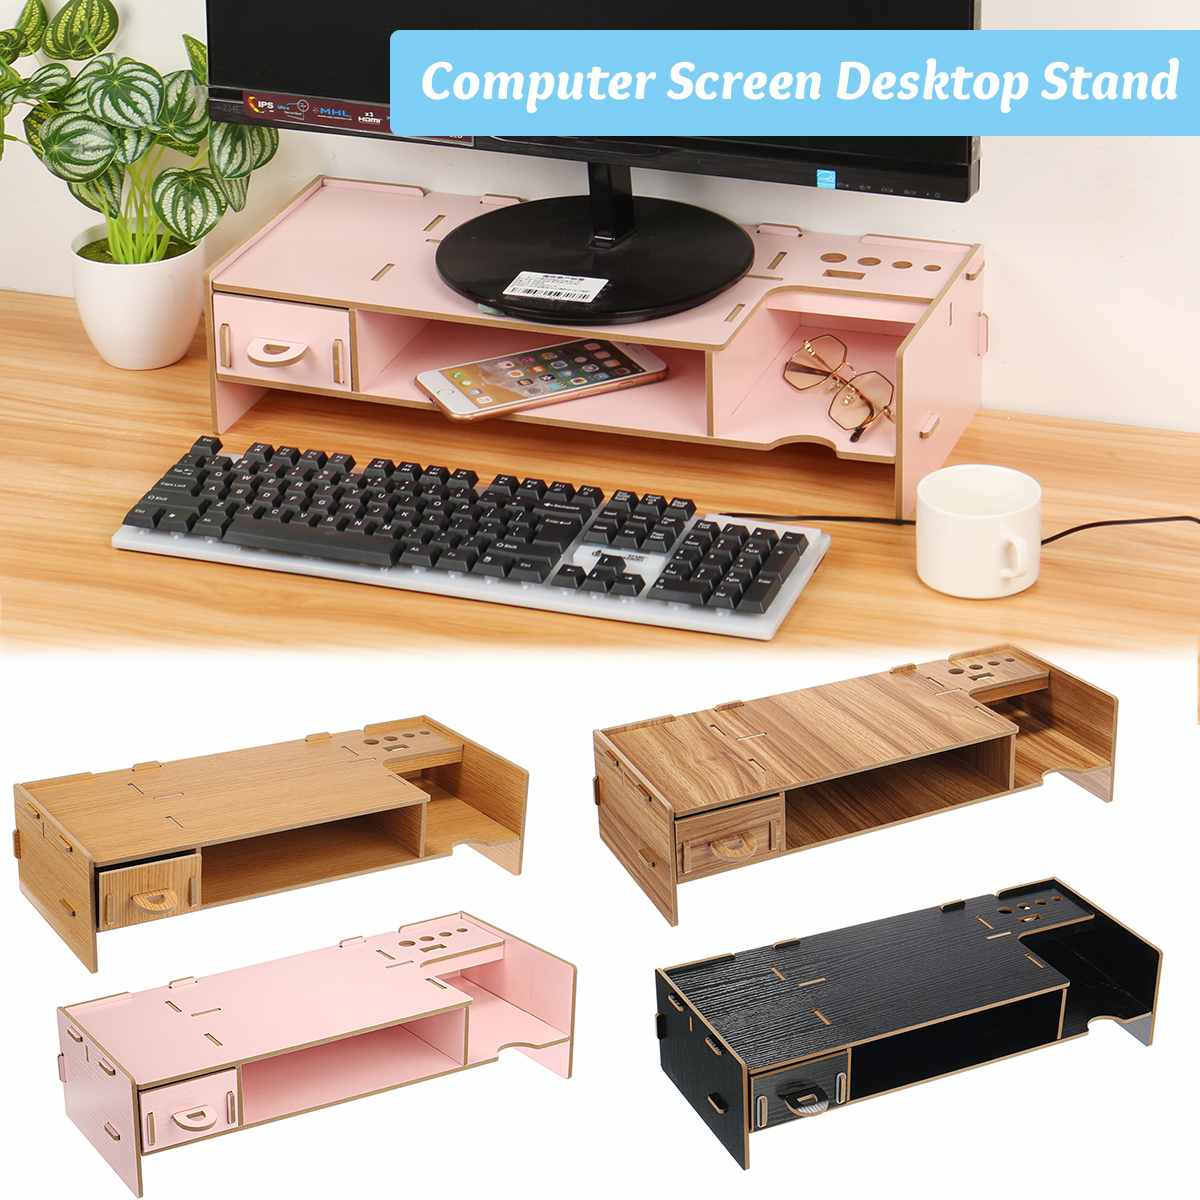 Computer Screen Riser Wood Shelf Plinth Strong Laptop Stand Multi-function Desktop Monitor Stand Desk Holder For Notebook TV